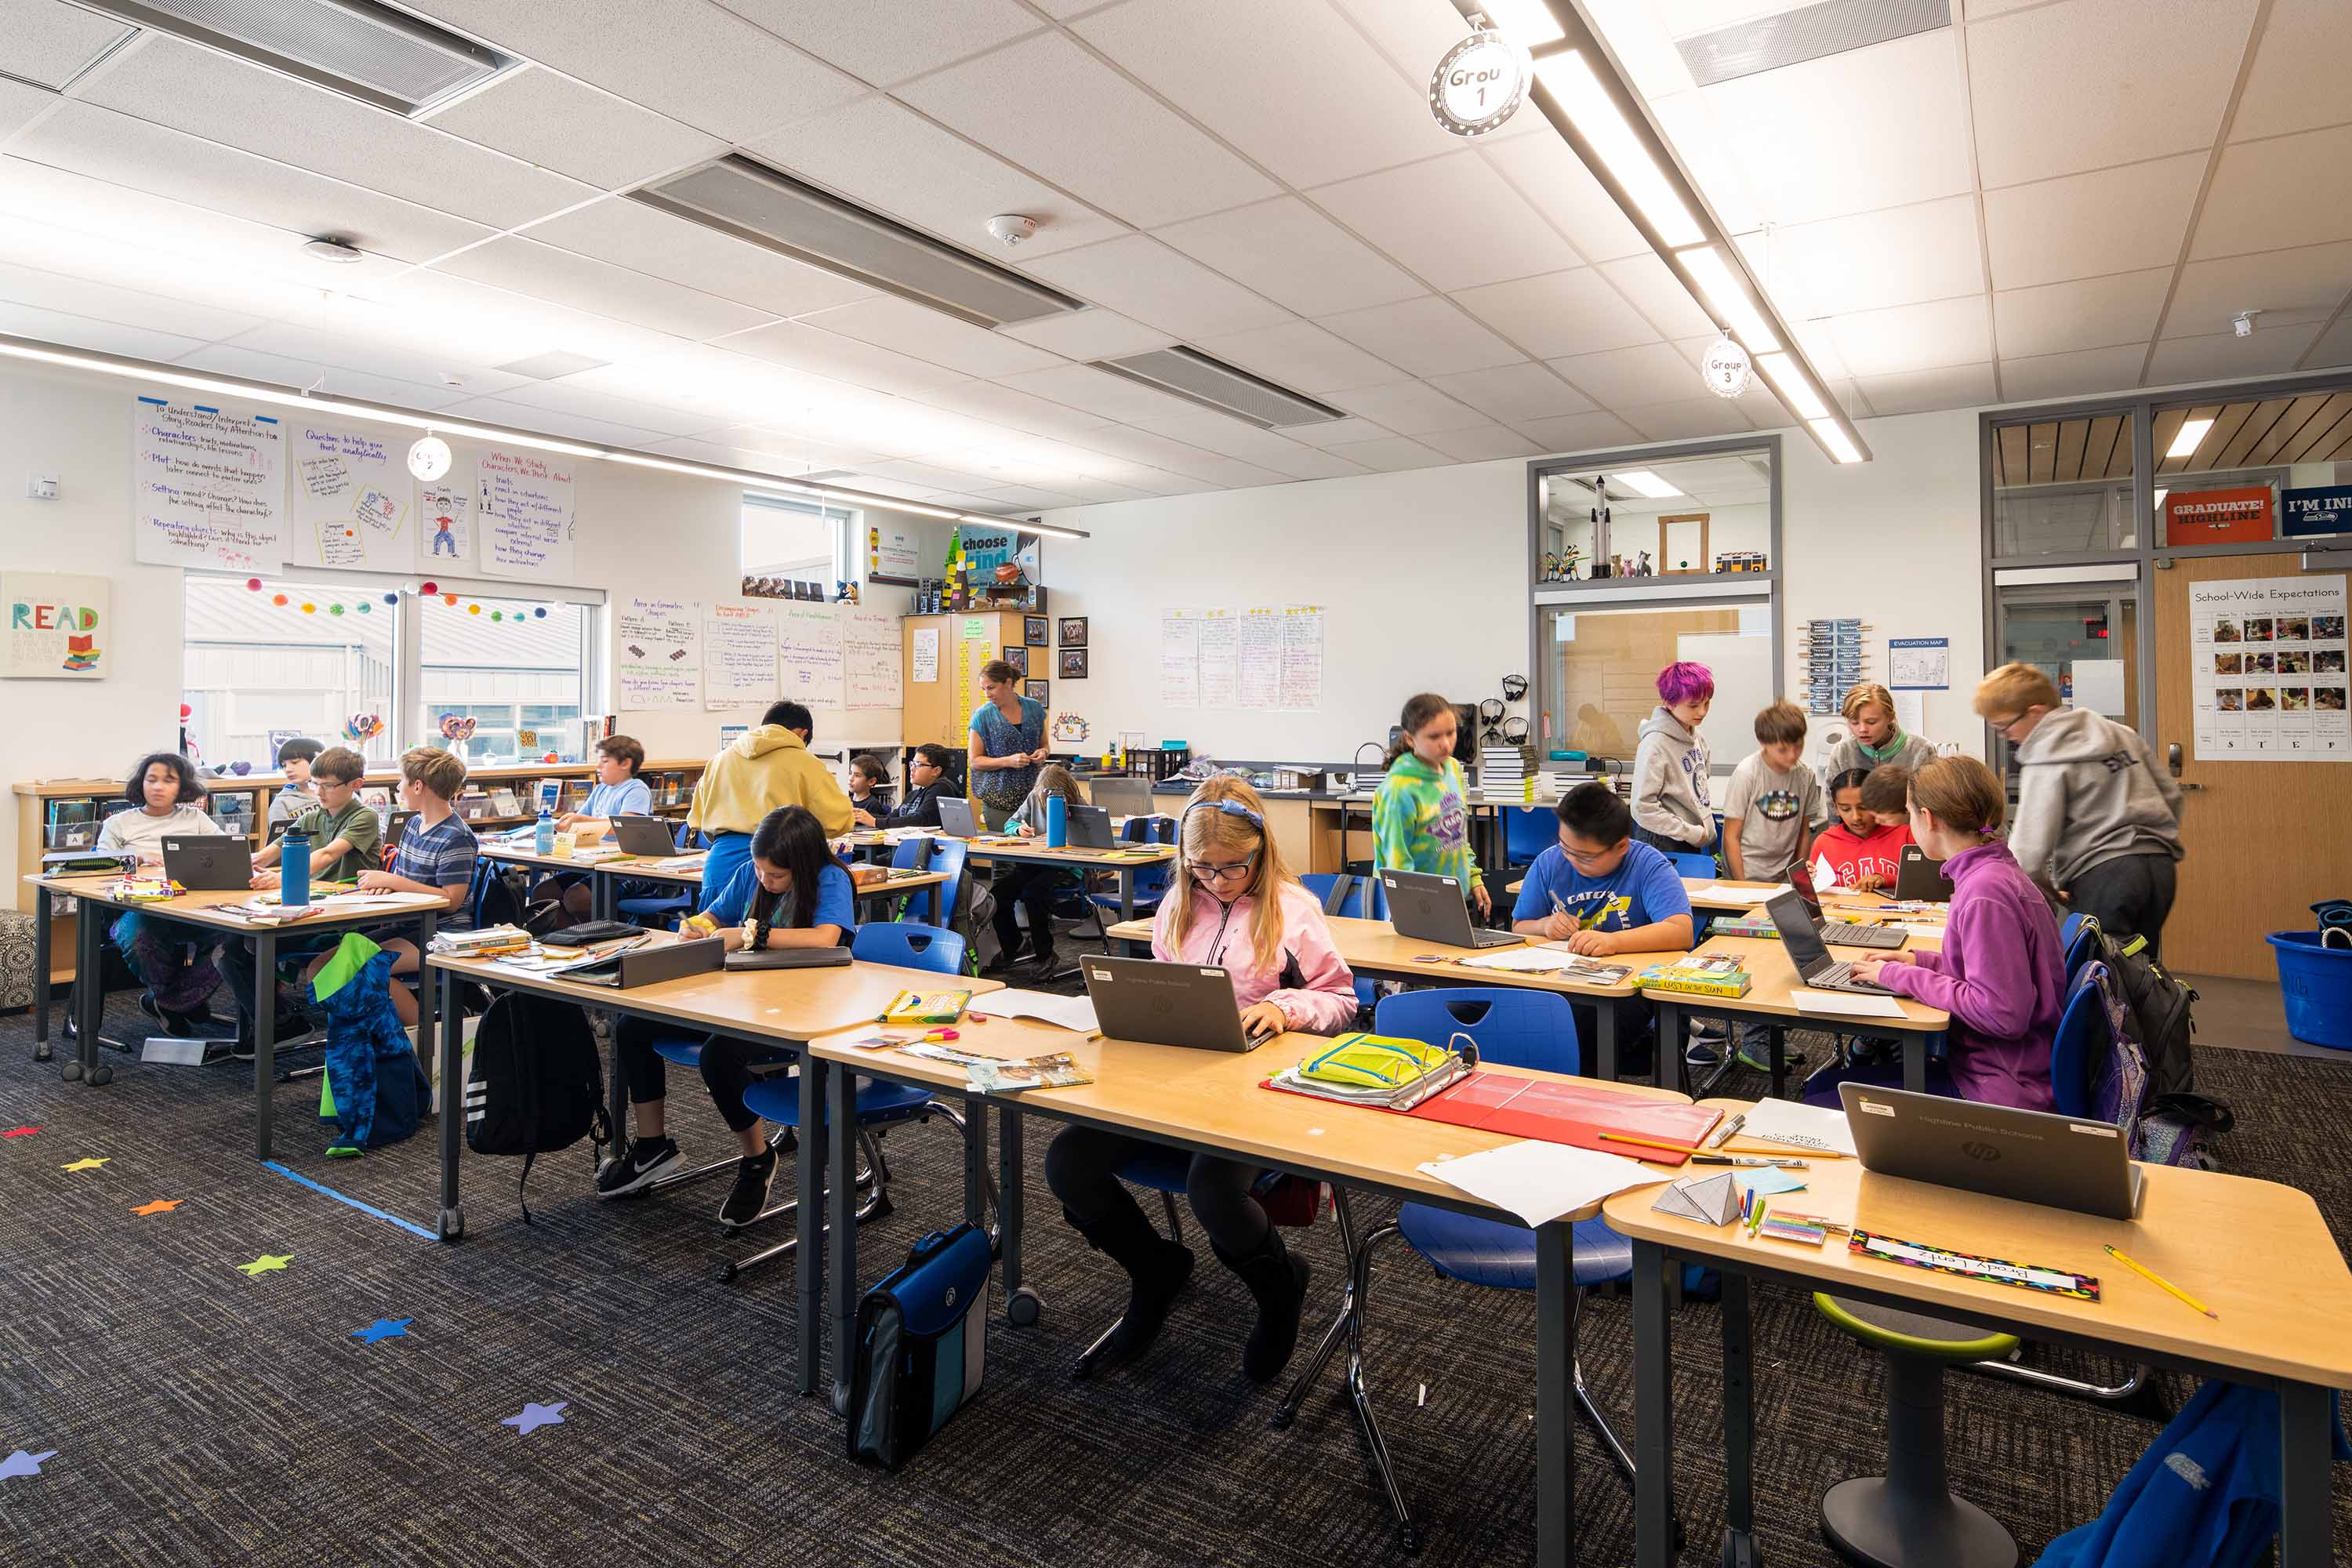 Students working in a classroom on laptops.